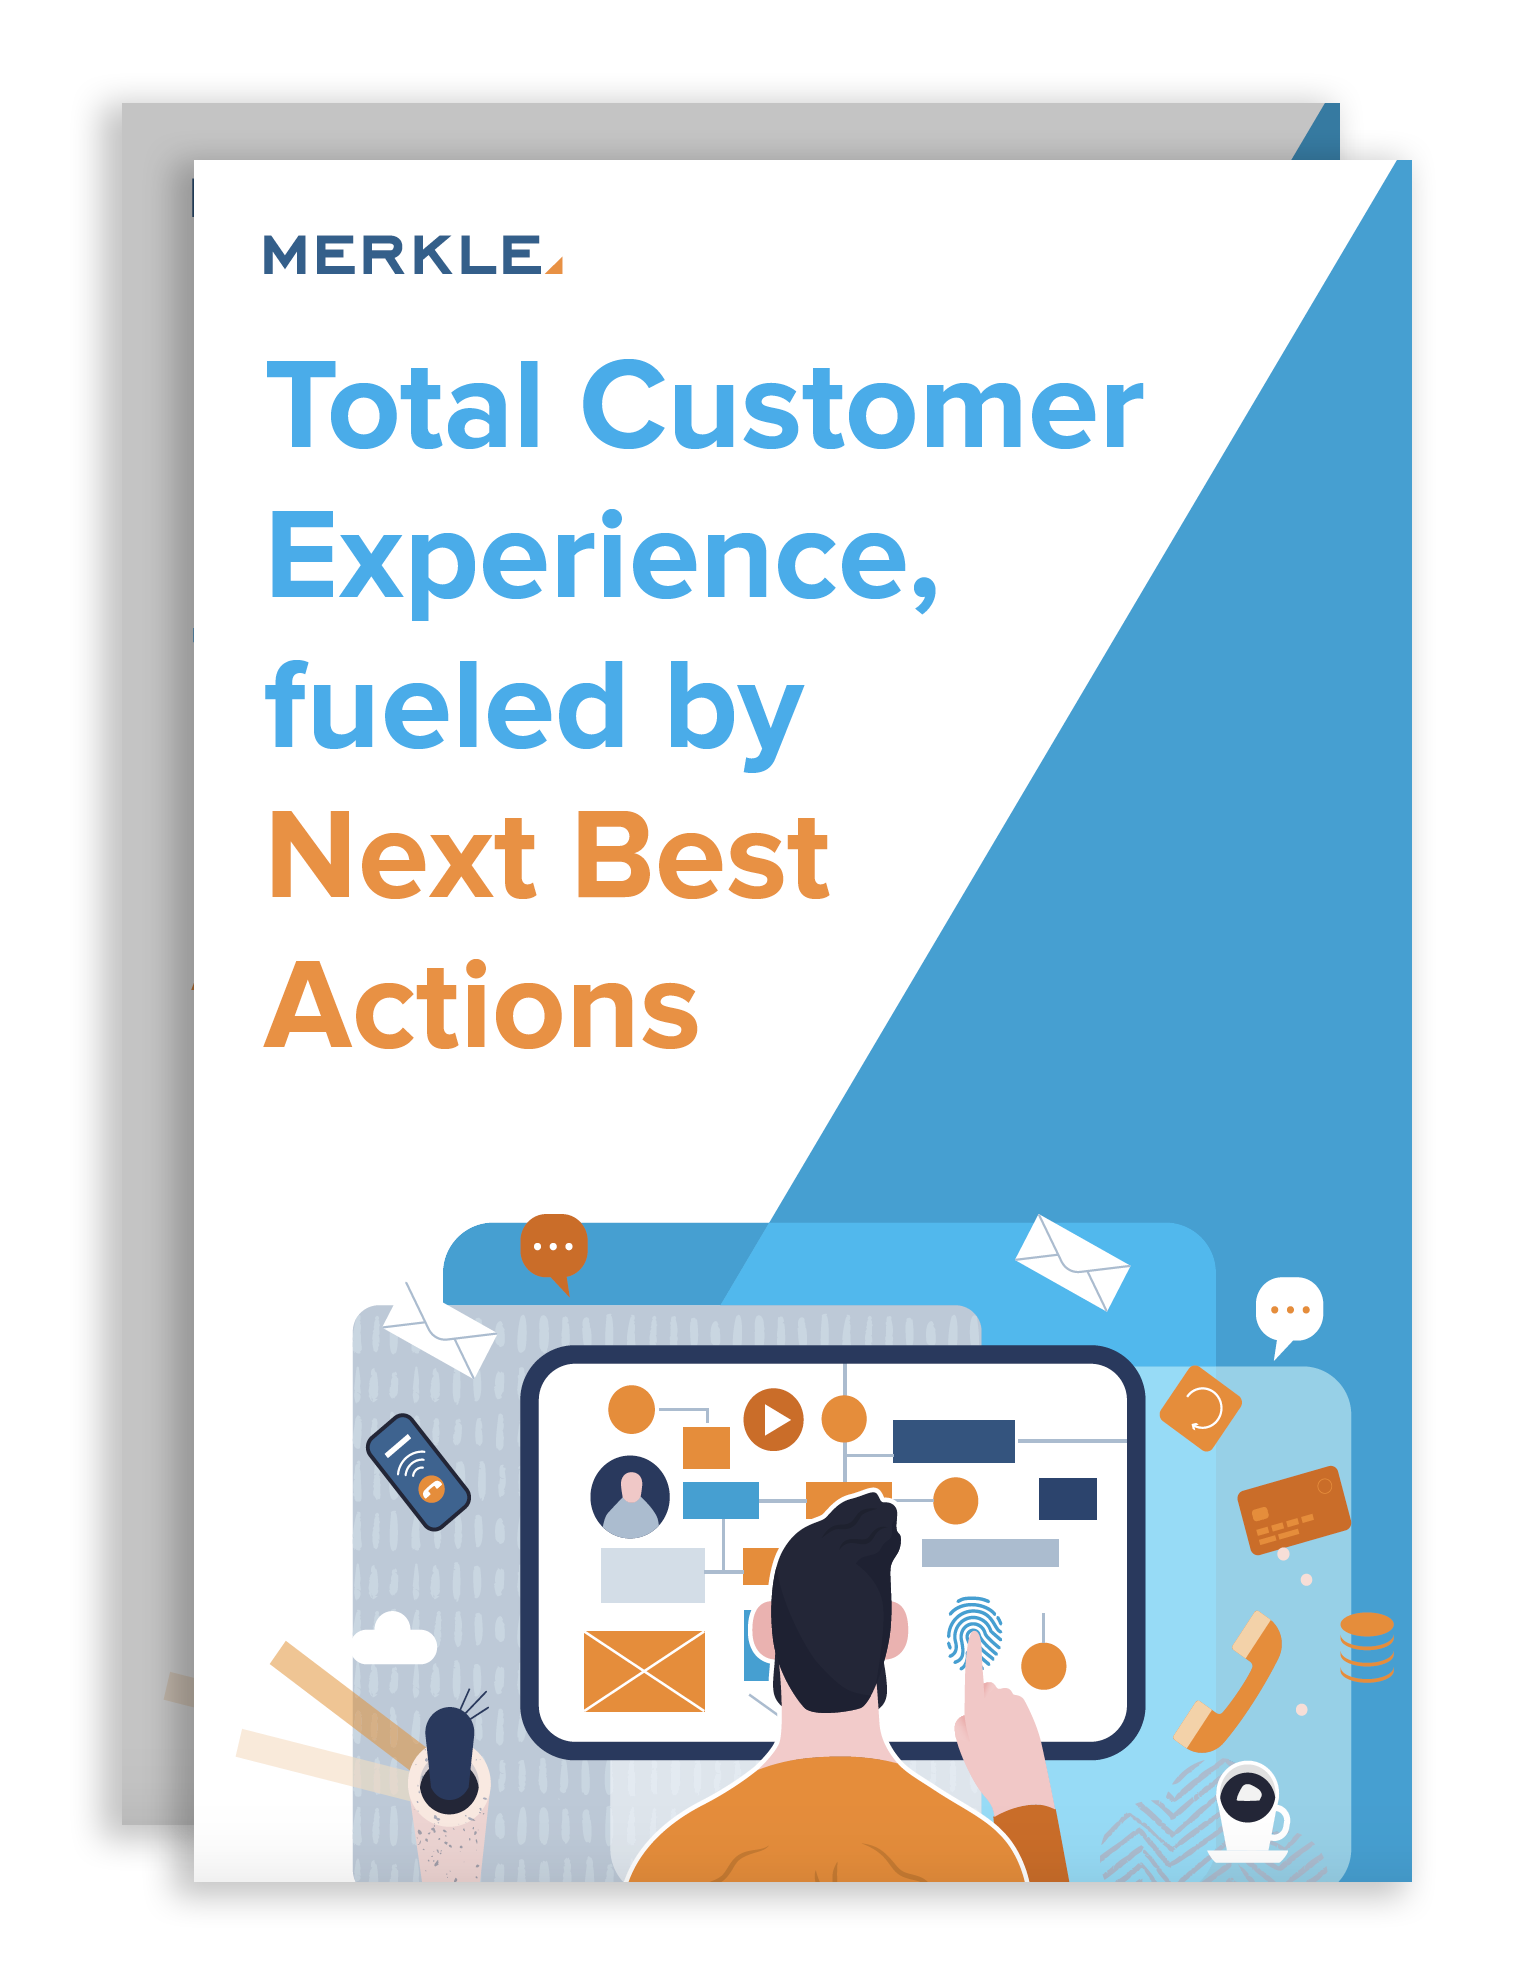 The Total Customer Experience is Fueled by Next Best Actions